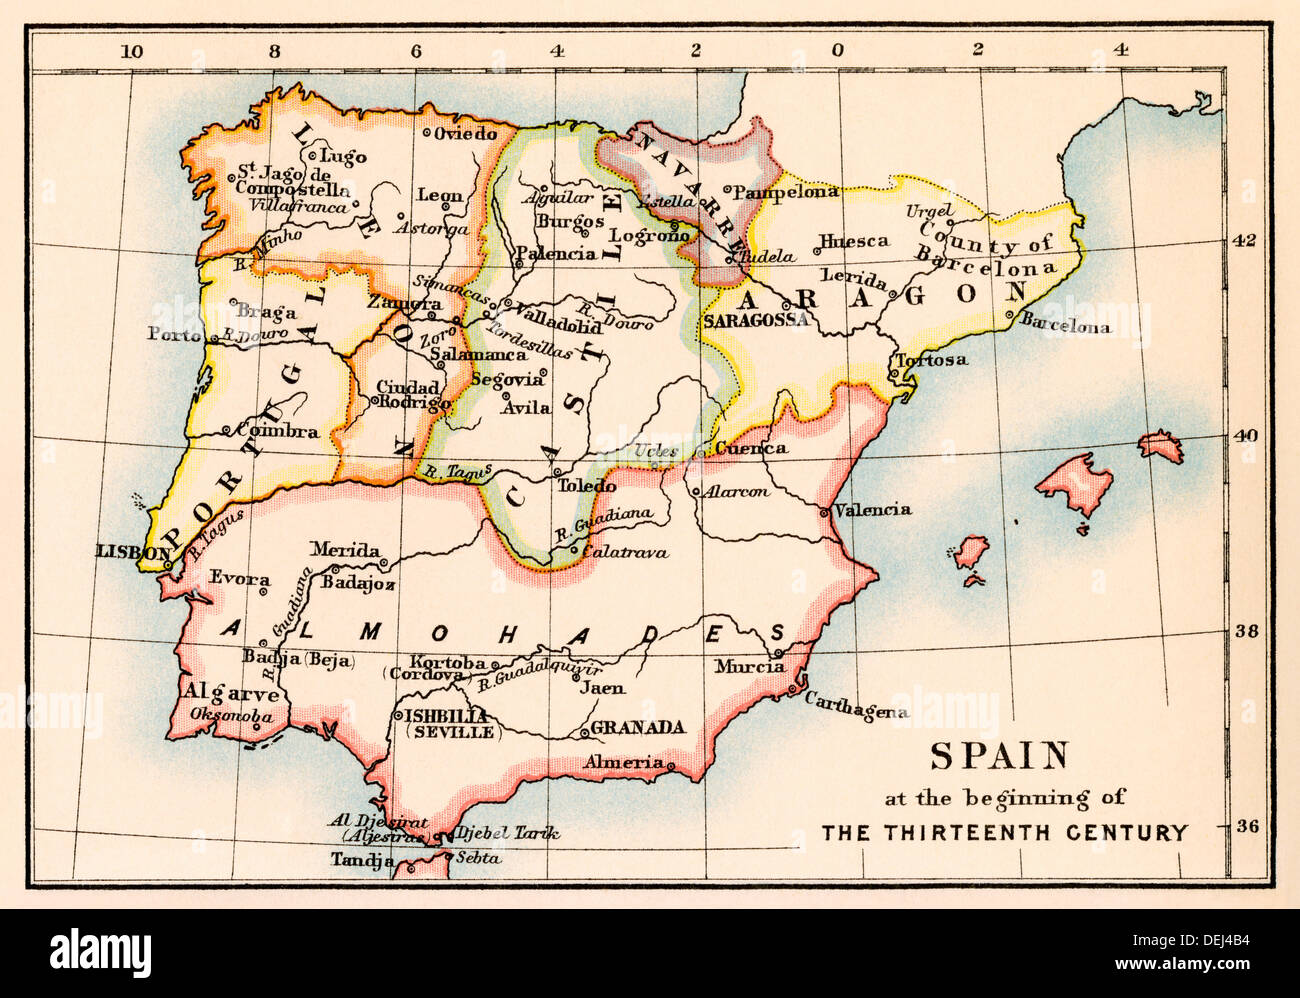 Map of the Iberian Peninsula under the Moors, 13th century. Color ...